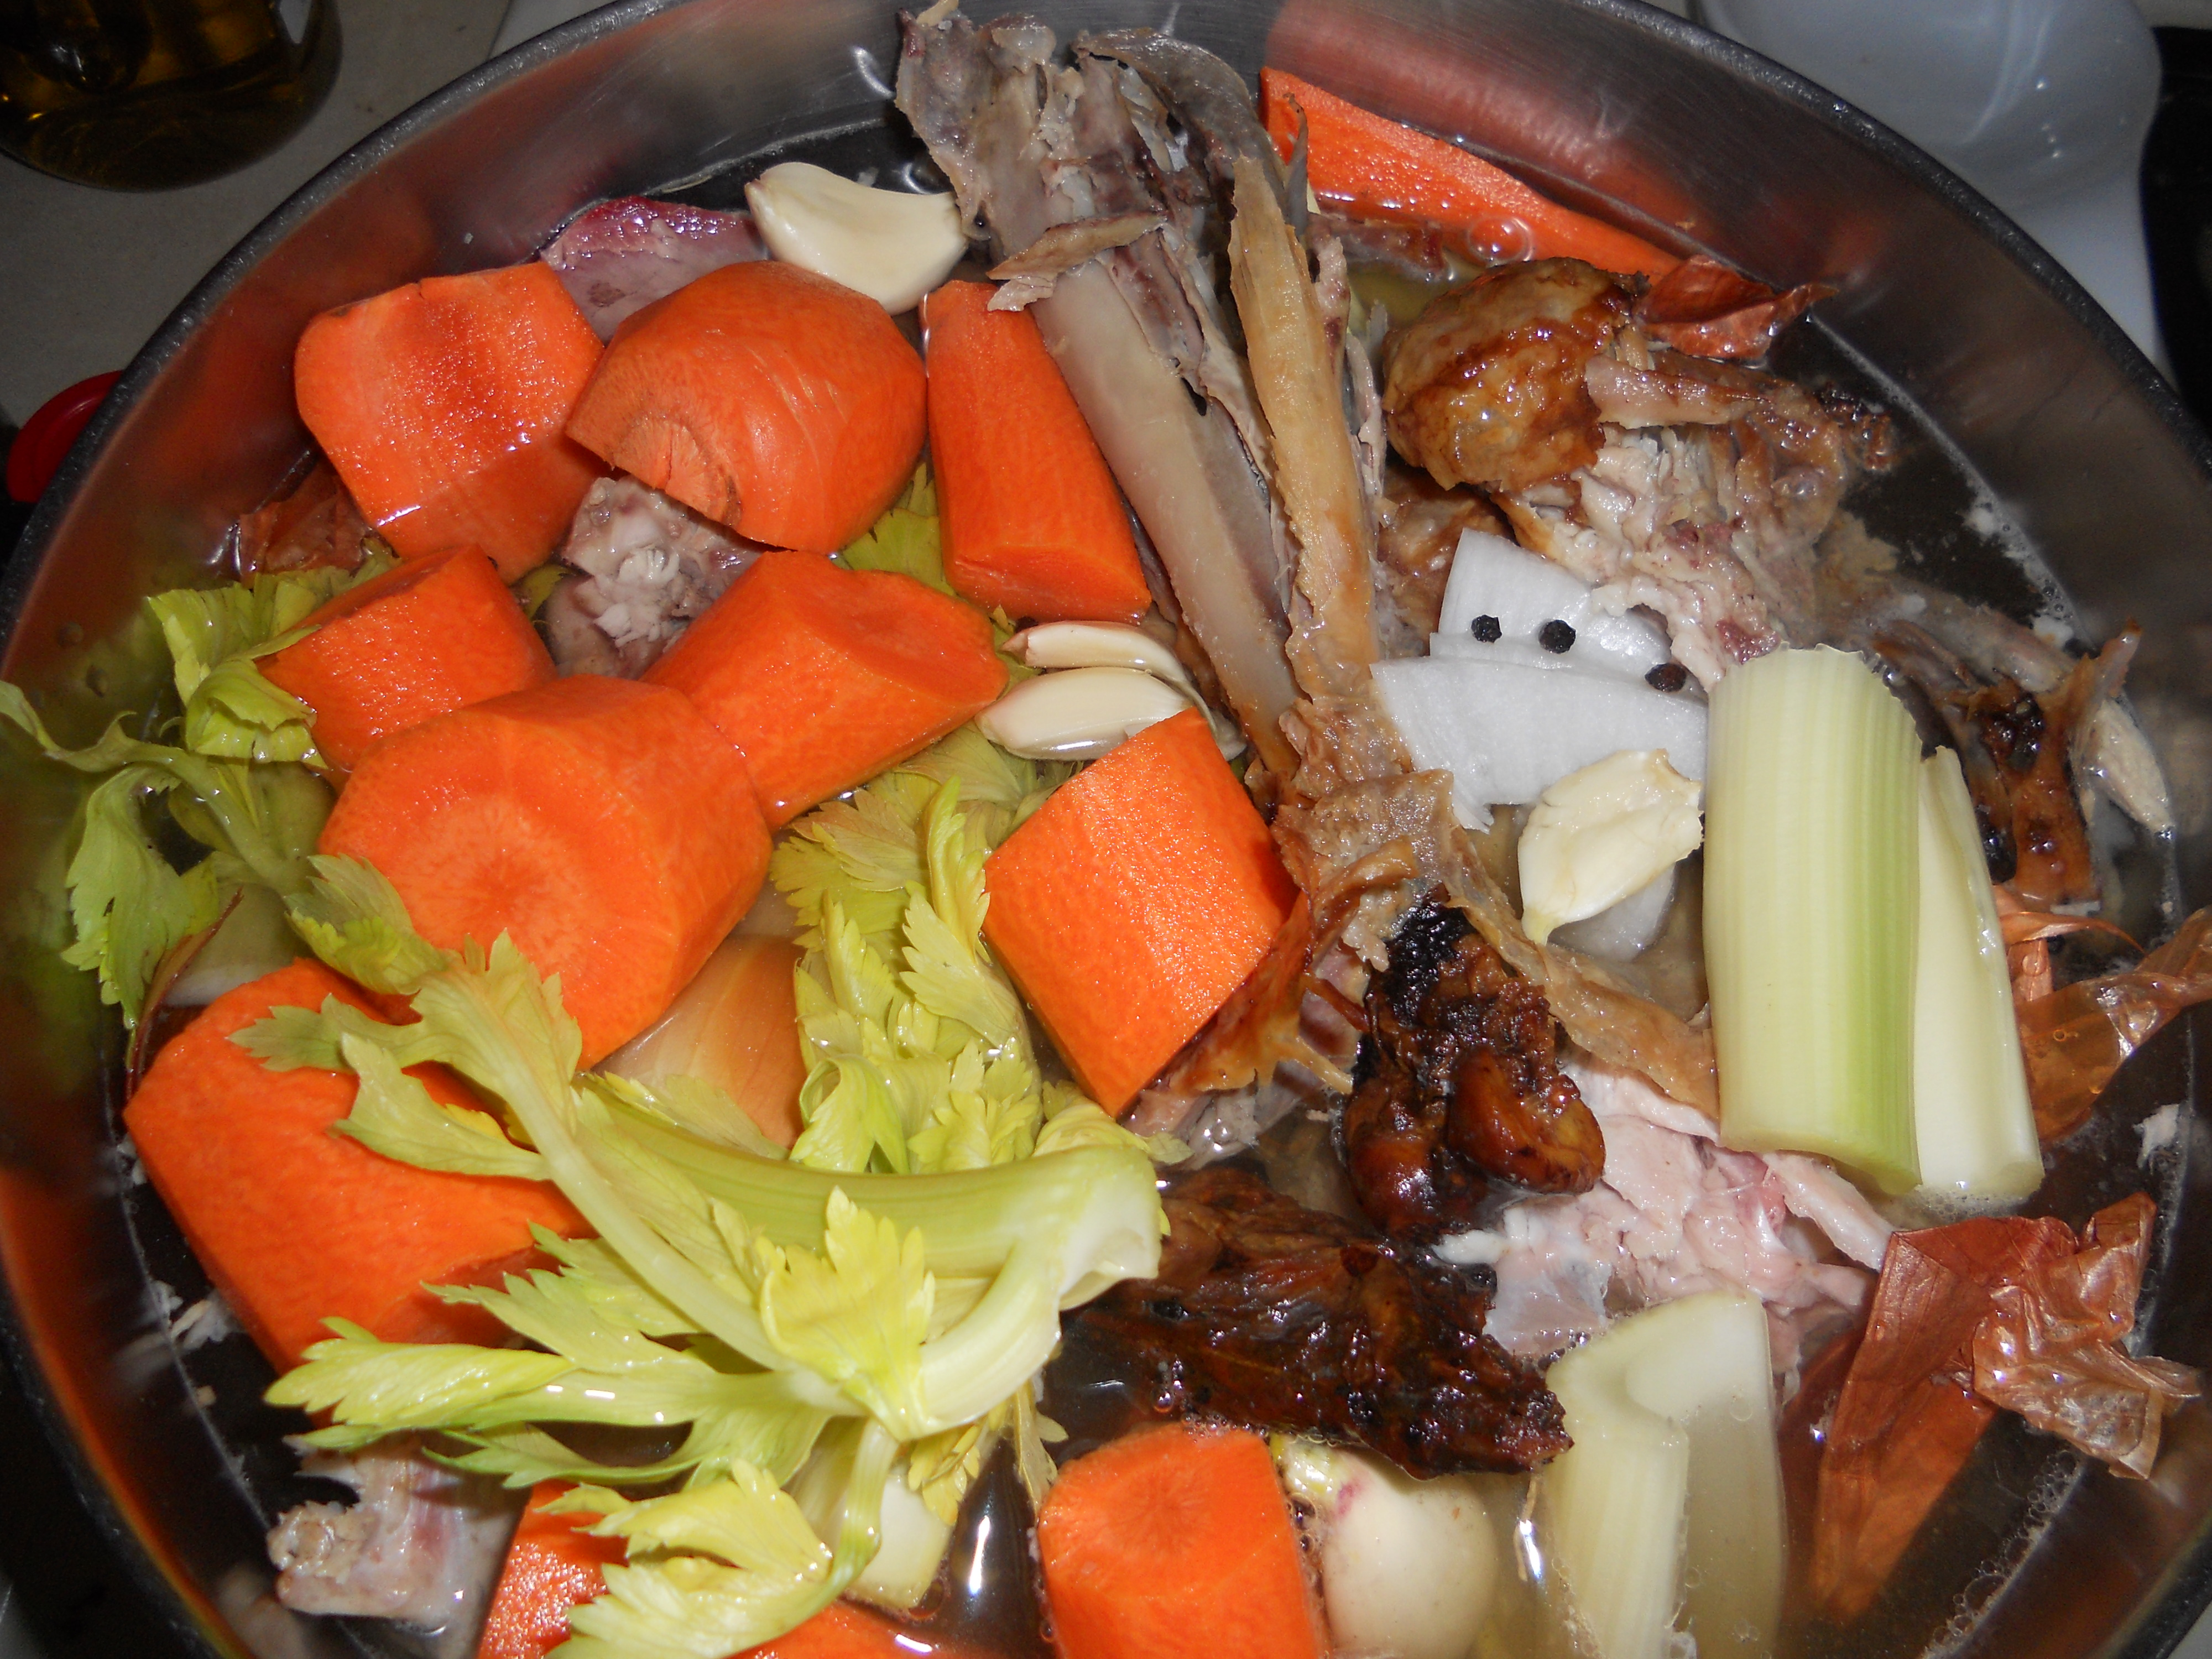 Broth violainthekitchen 39 s blog for M kitchen world chop wash